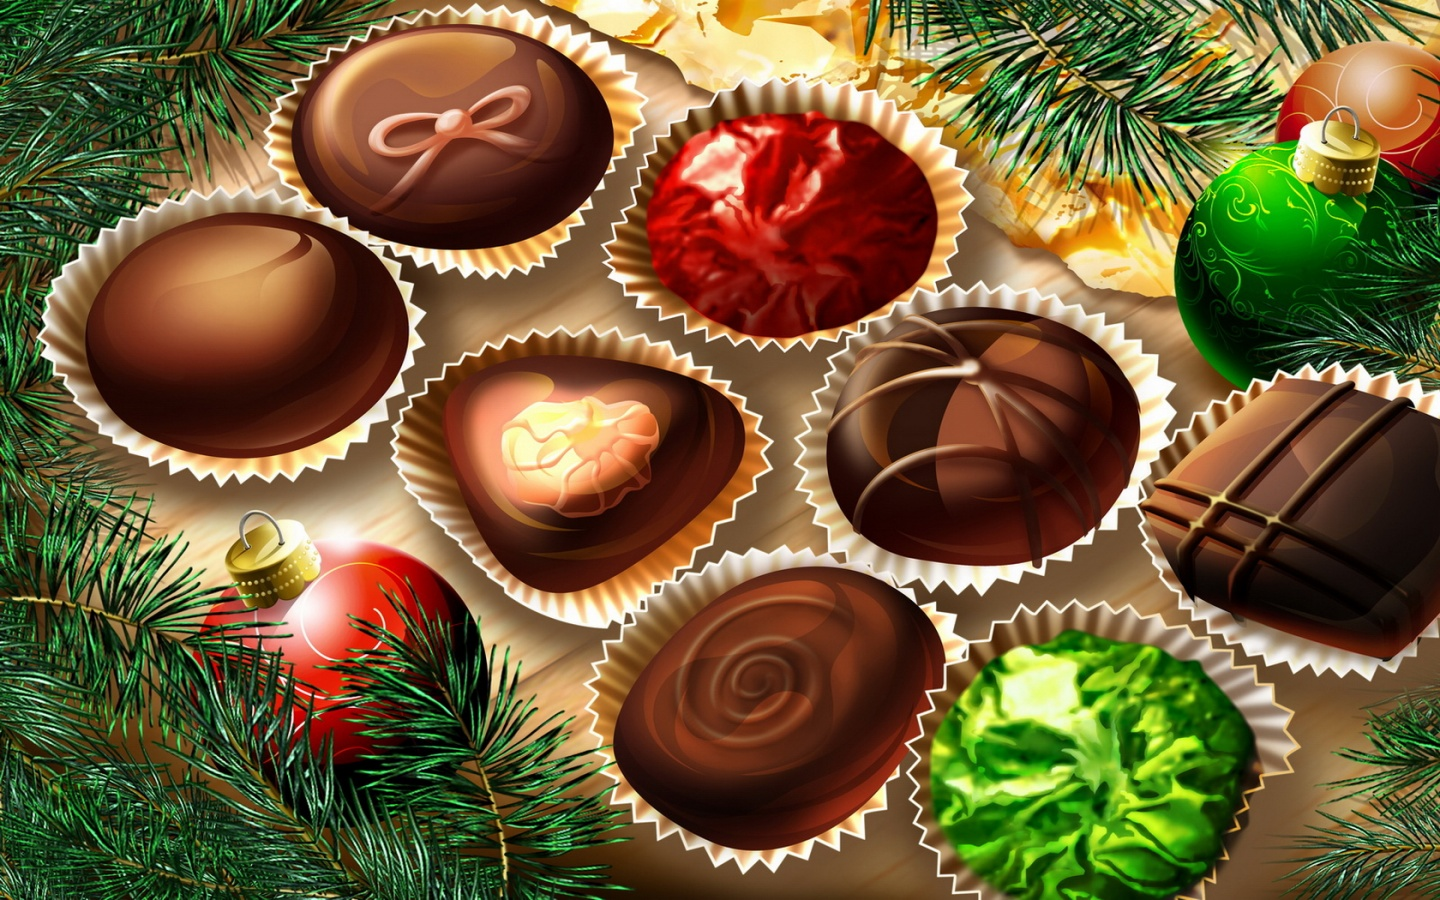 computer wallpaper Christmas Chocolates Wallpaper For Computer 1440x900